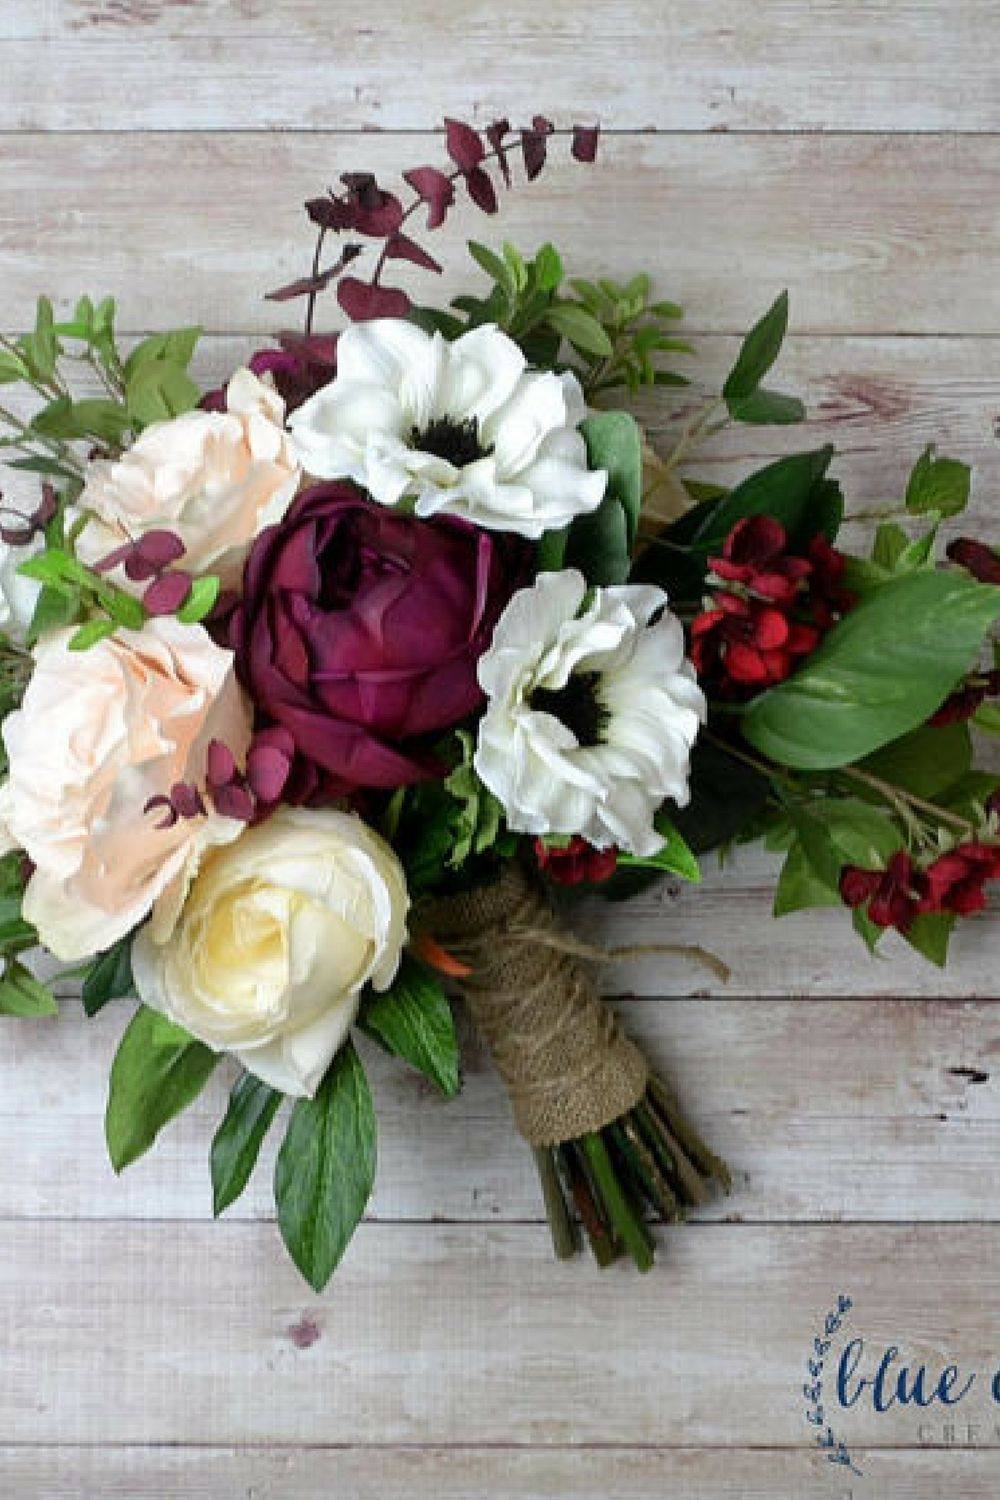 Fall wedding bouquet wedding bouquet wedding flowers bridal fall wedding bouquet wedding bouquet wedding flowers bridal bouquet boho bouquet izmirmasajfo